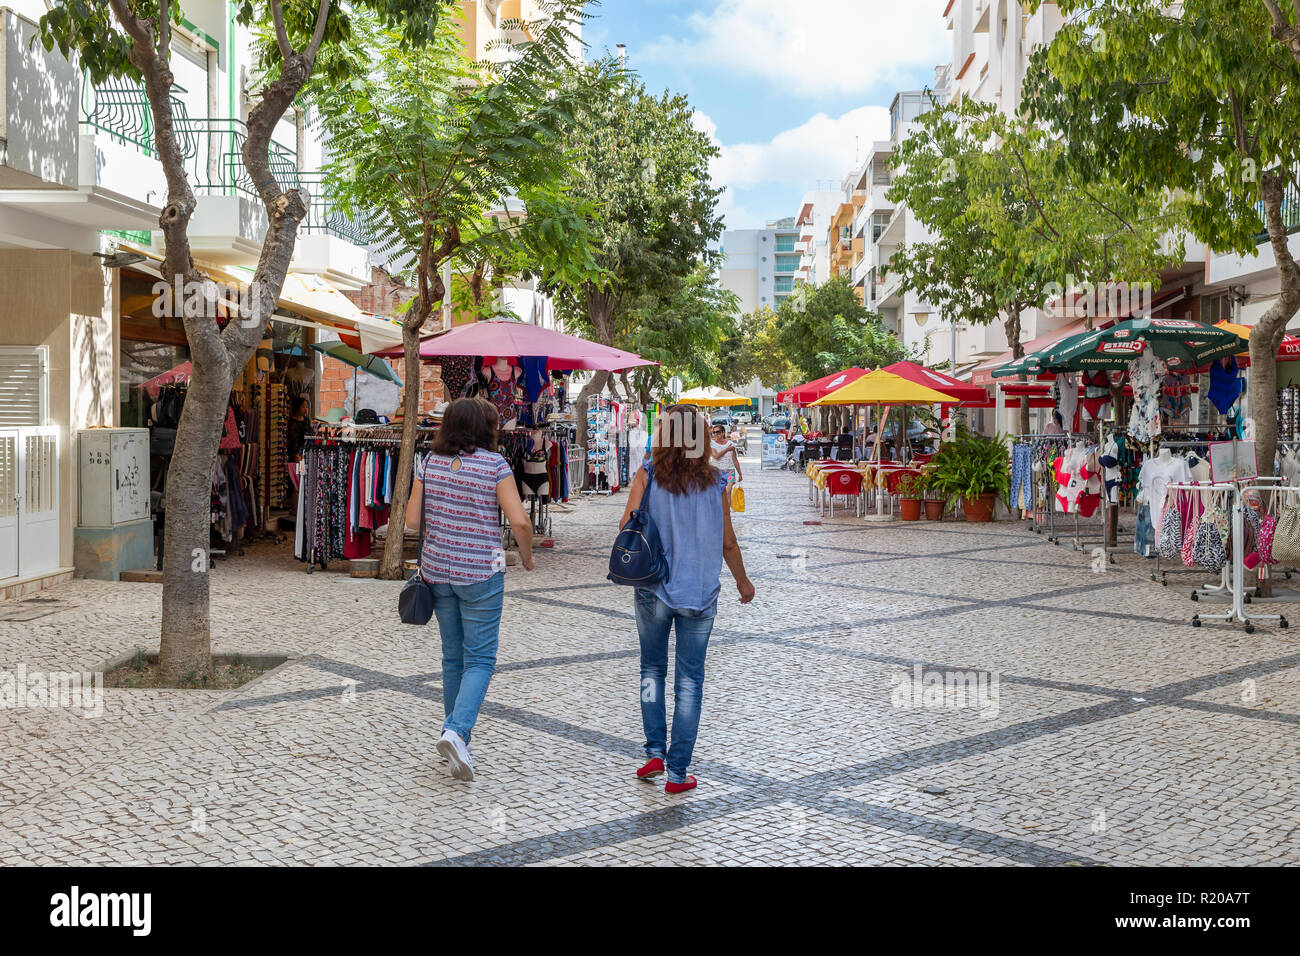 Pedestrian precinct in Monte Gordo town centre with shops and cafes, Algarve, Portugal - Stock Image